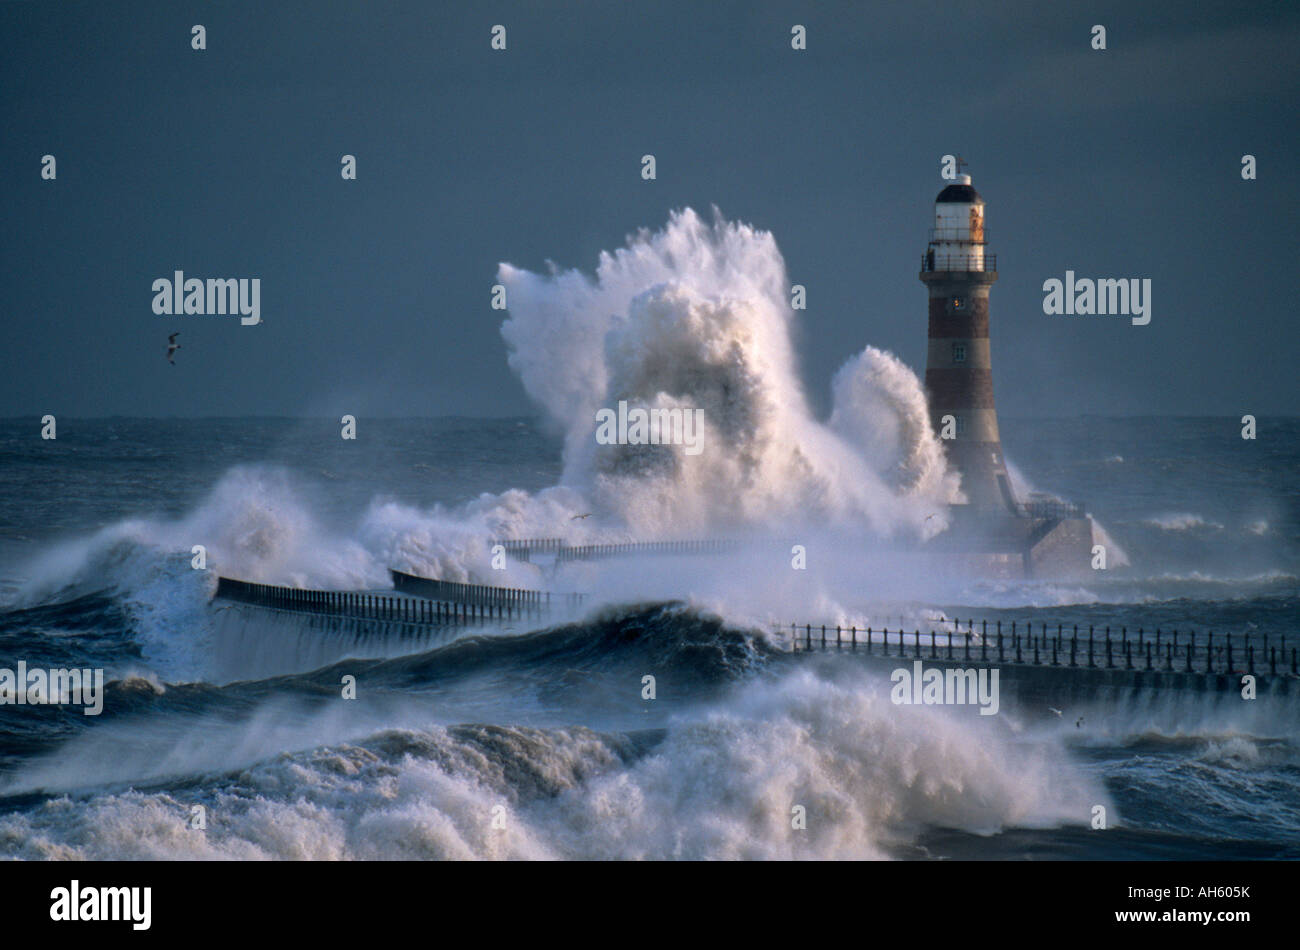 A huge wave breaks over the lighthouse on Roker Pier, during a winter storm. Sunderland. Tyne & Wear. Stock Photo